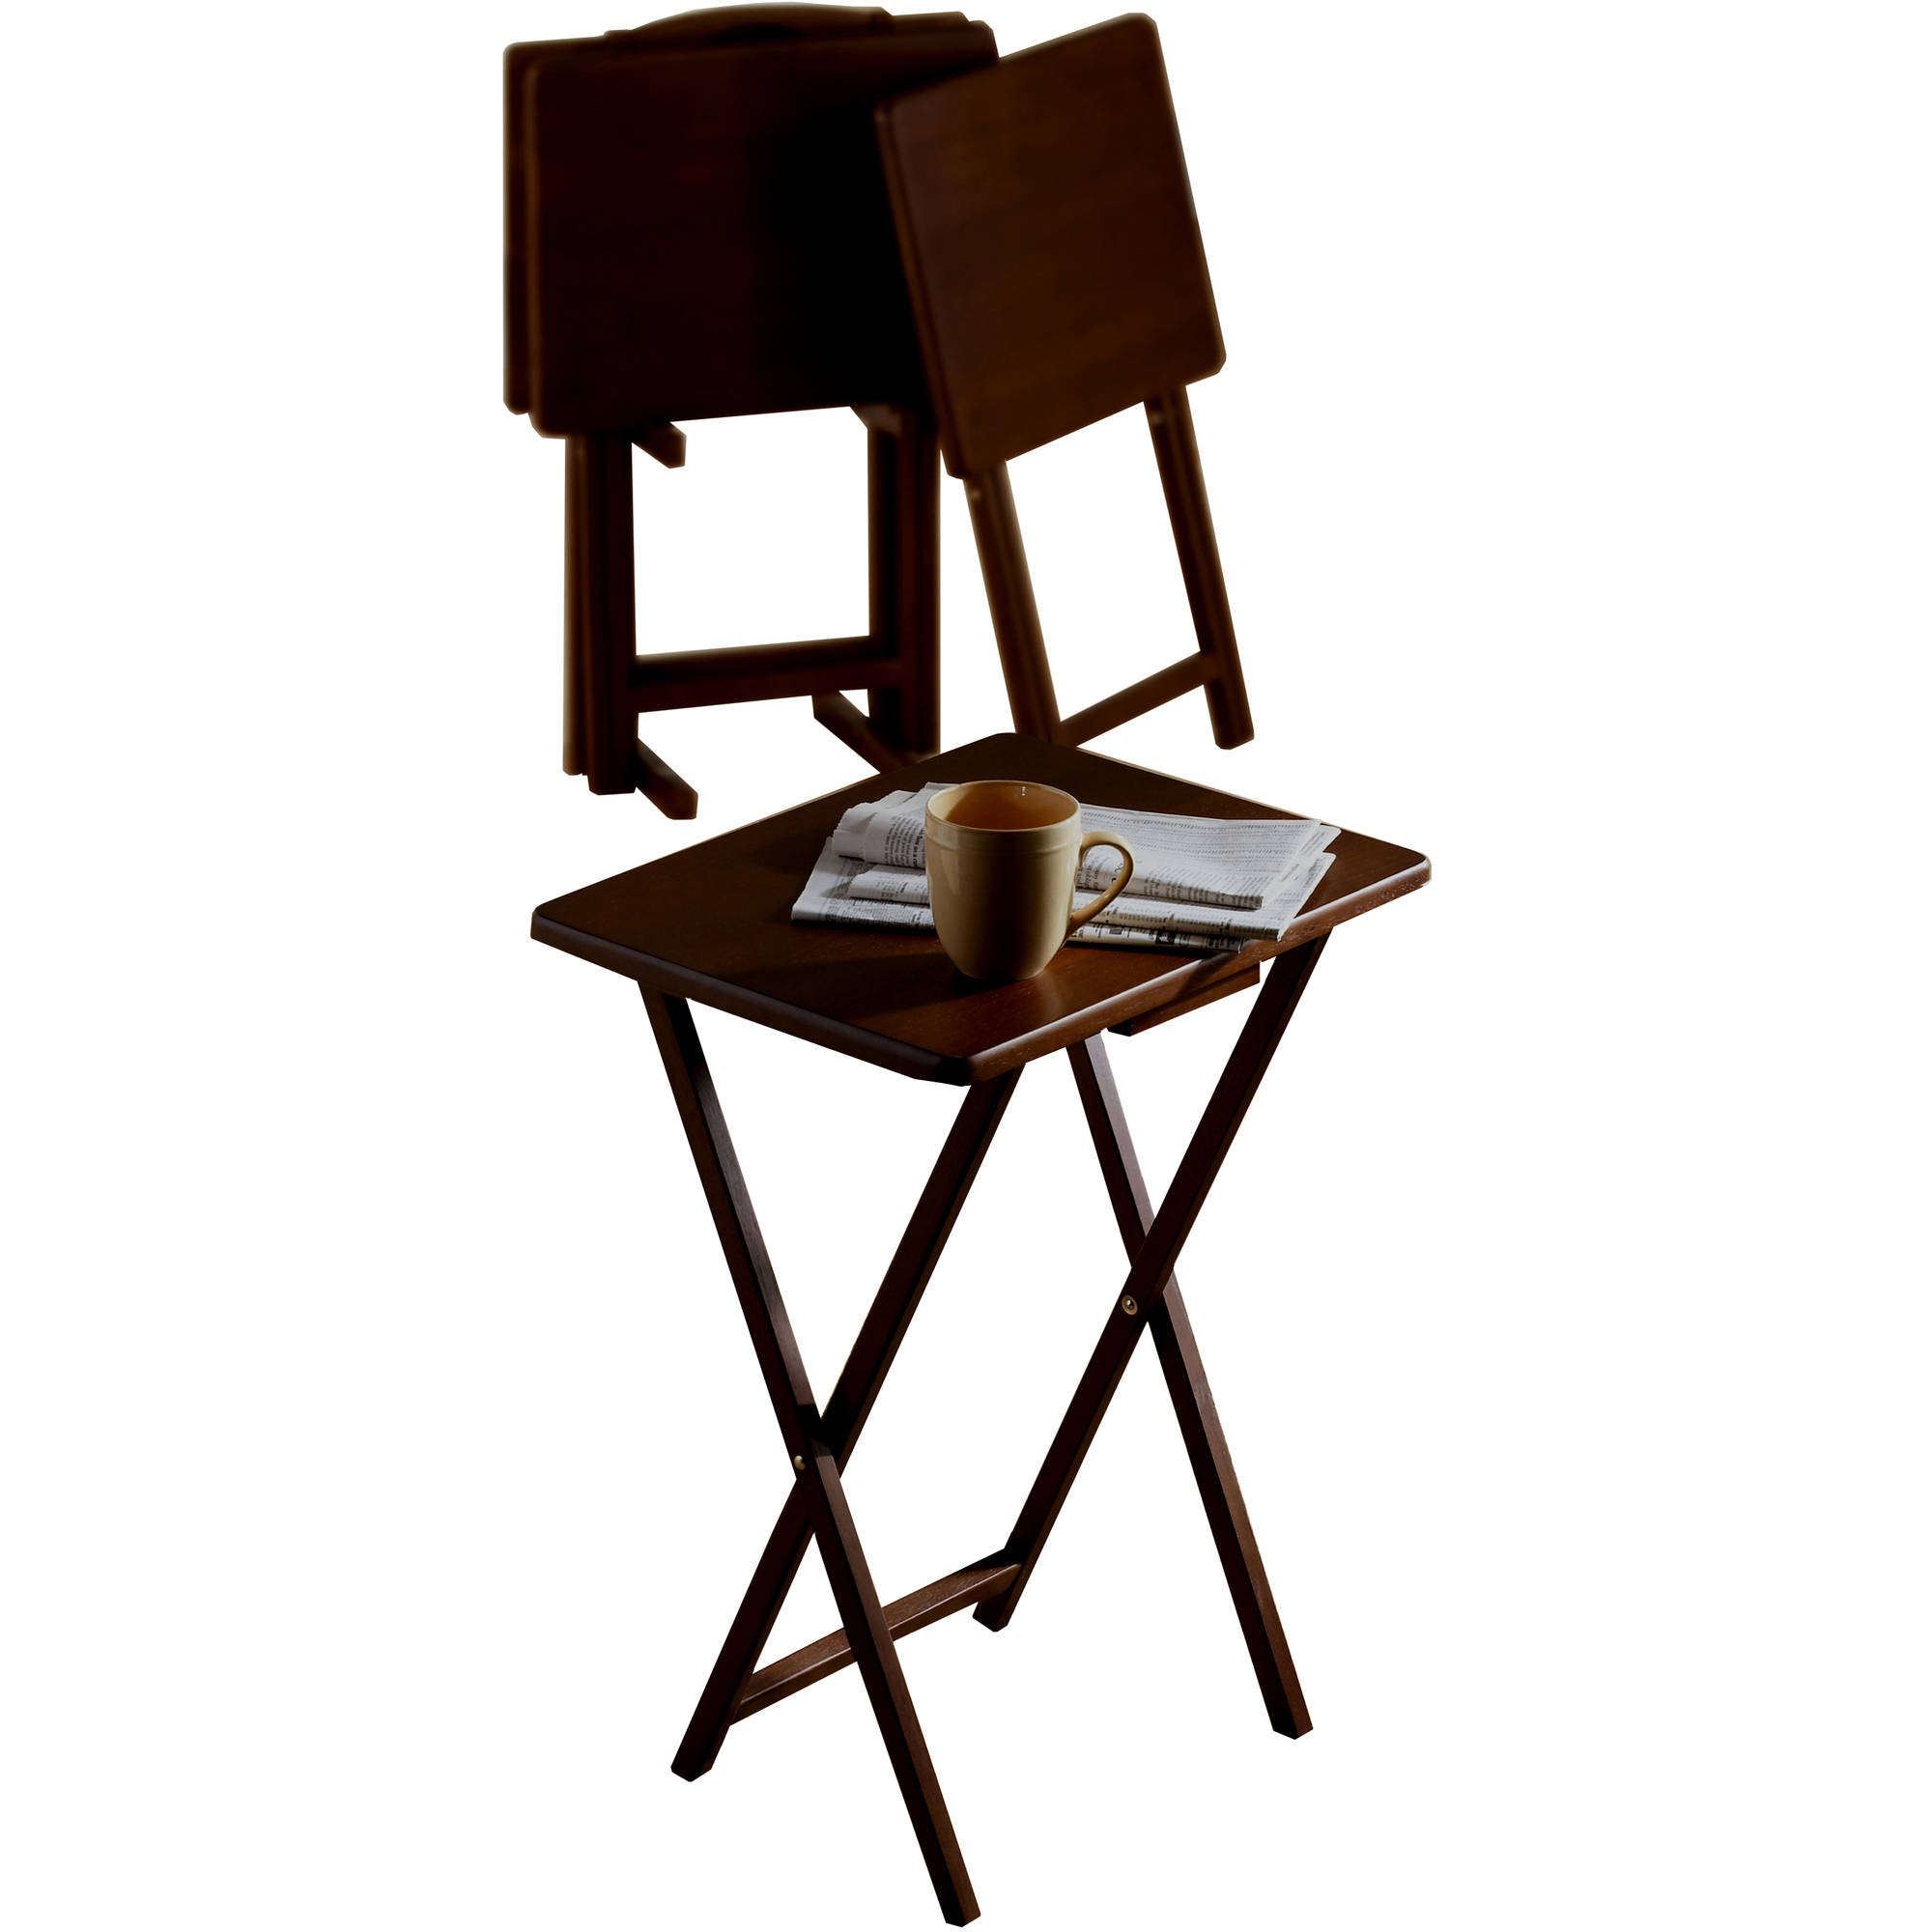 5 Piece Tray Table Set Folding Wood TV Game Snack Dinner Couch Laptop Stand NEW  sc 1 st  eBay & 5 Piece Tray Table Set Folding Wood TV Game Snack Dinner Couch ...